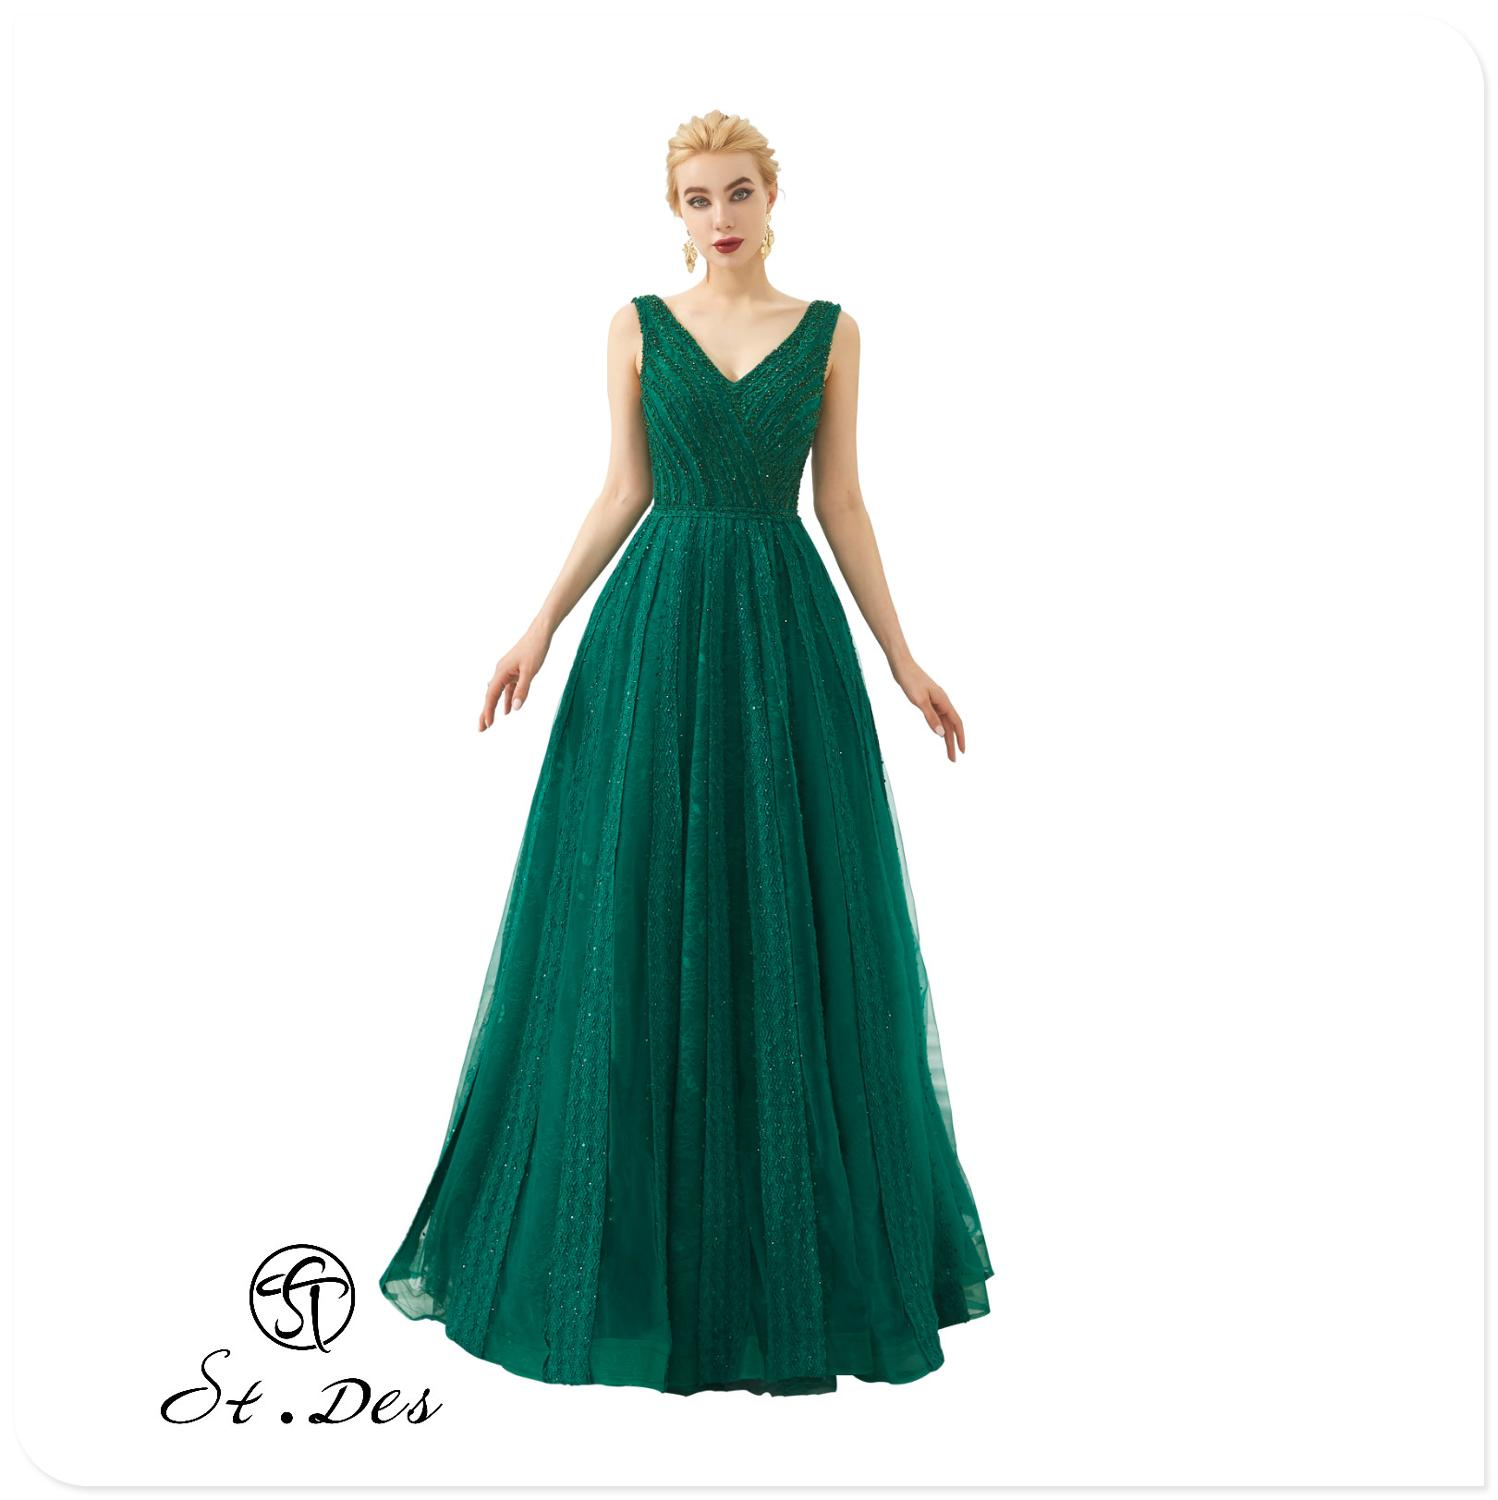 NEW 2020 St.Des Green Black Wine Purple A-line V-Neck Beading Diamond Sleeveless Designer Floor Length Evening Dress Party Dress